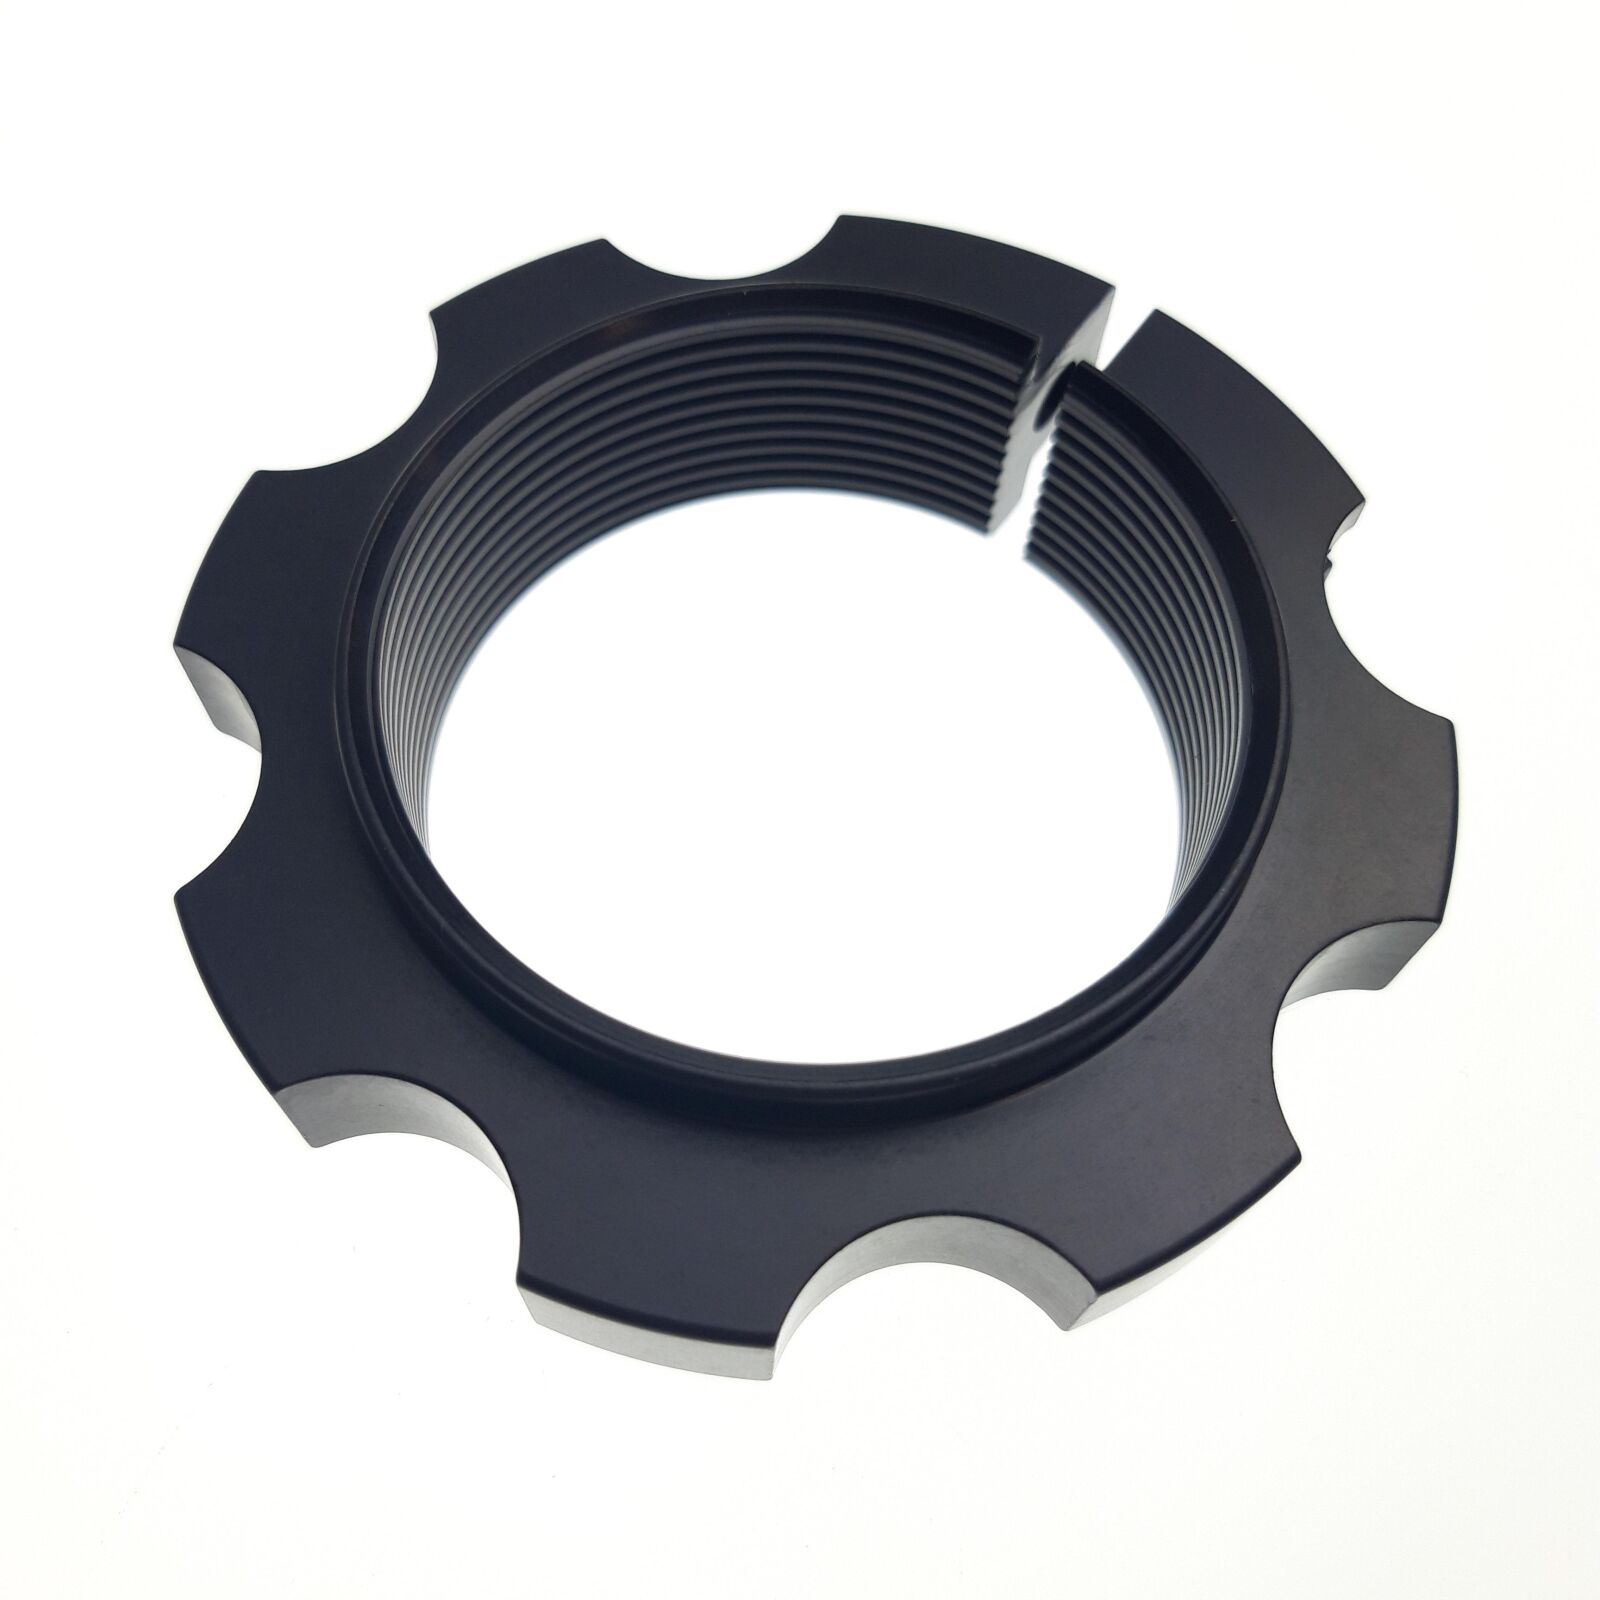 Spring Hardware: Preolad Ring (2.25 ID and 2.50 ID Spring) Clamp Design, AL 6061, Black